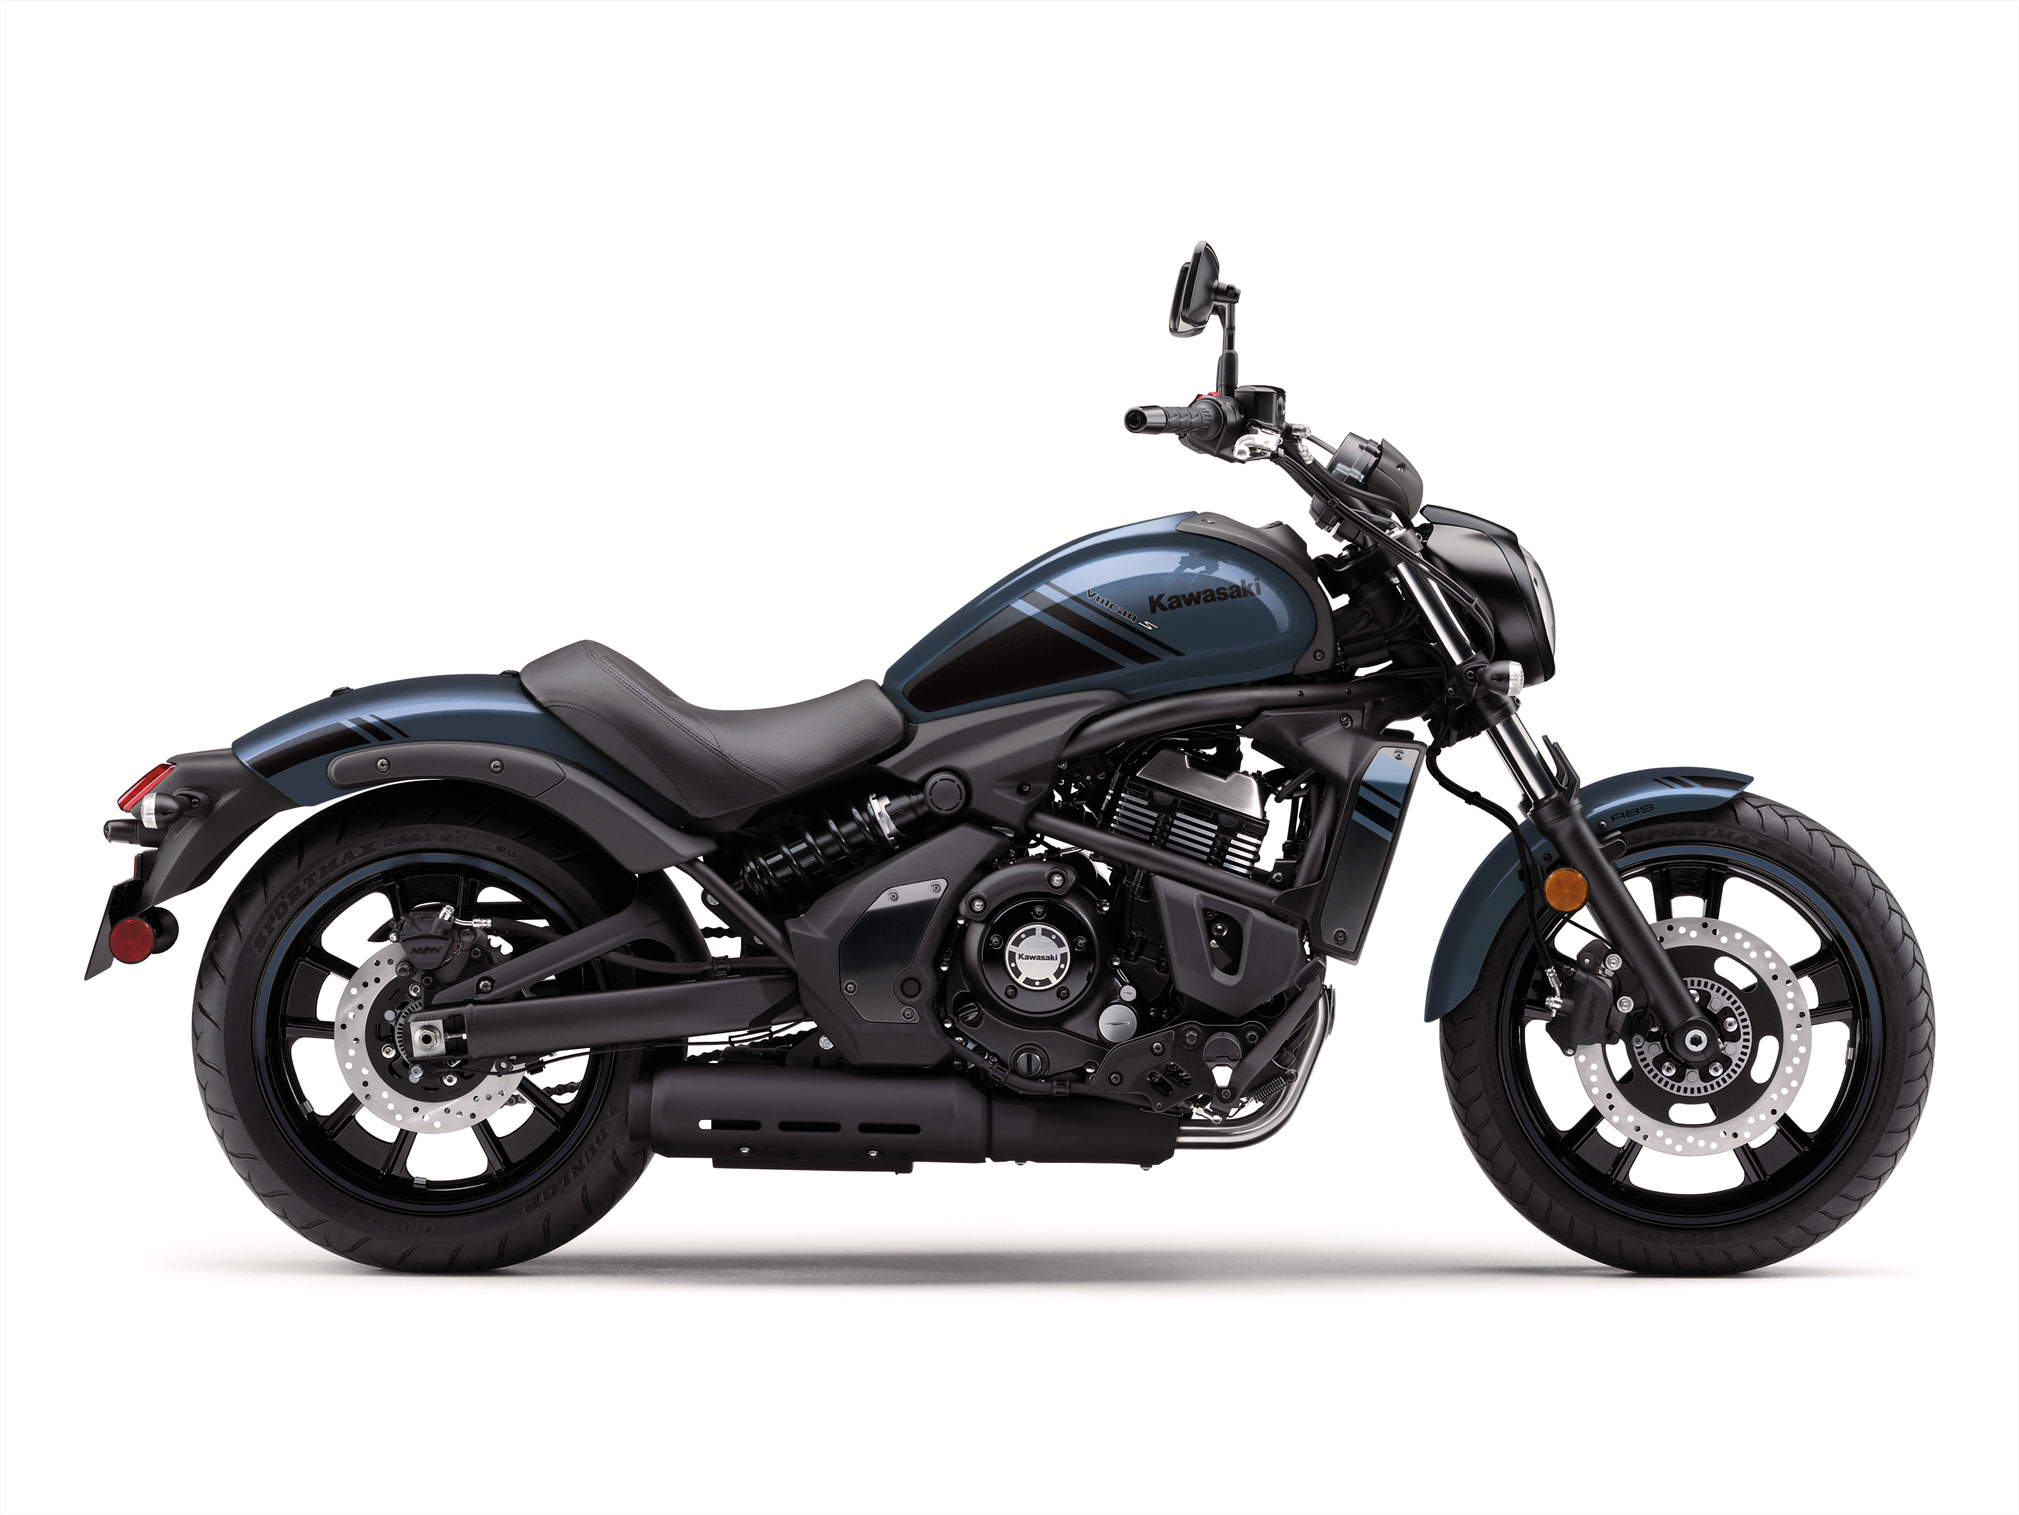 2019 kawasaki vulcan s guide total motorcycle. Black Bedroom Furniture Sets. Home Design Ideas